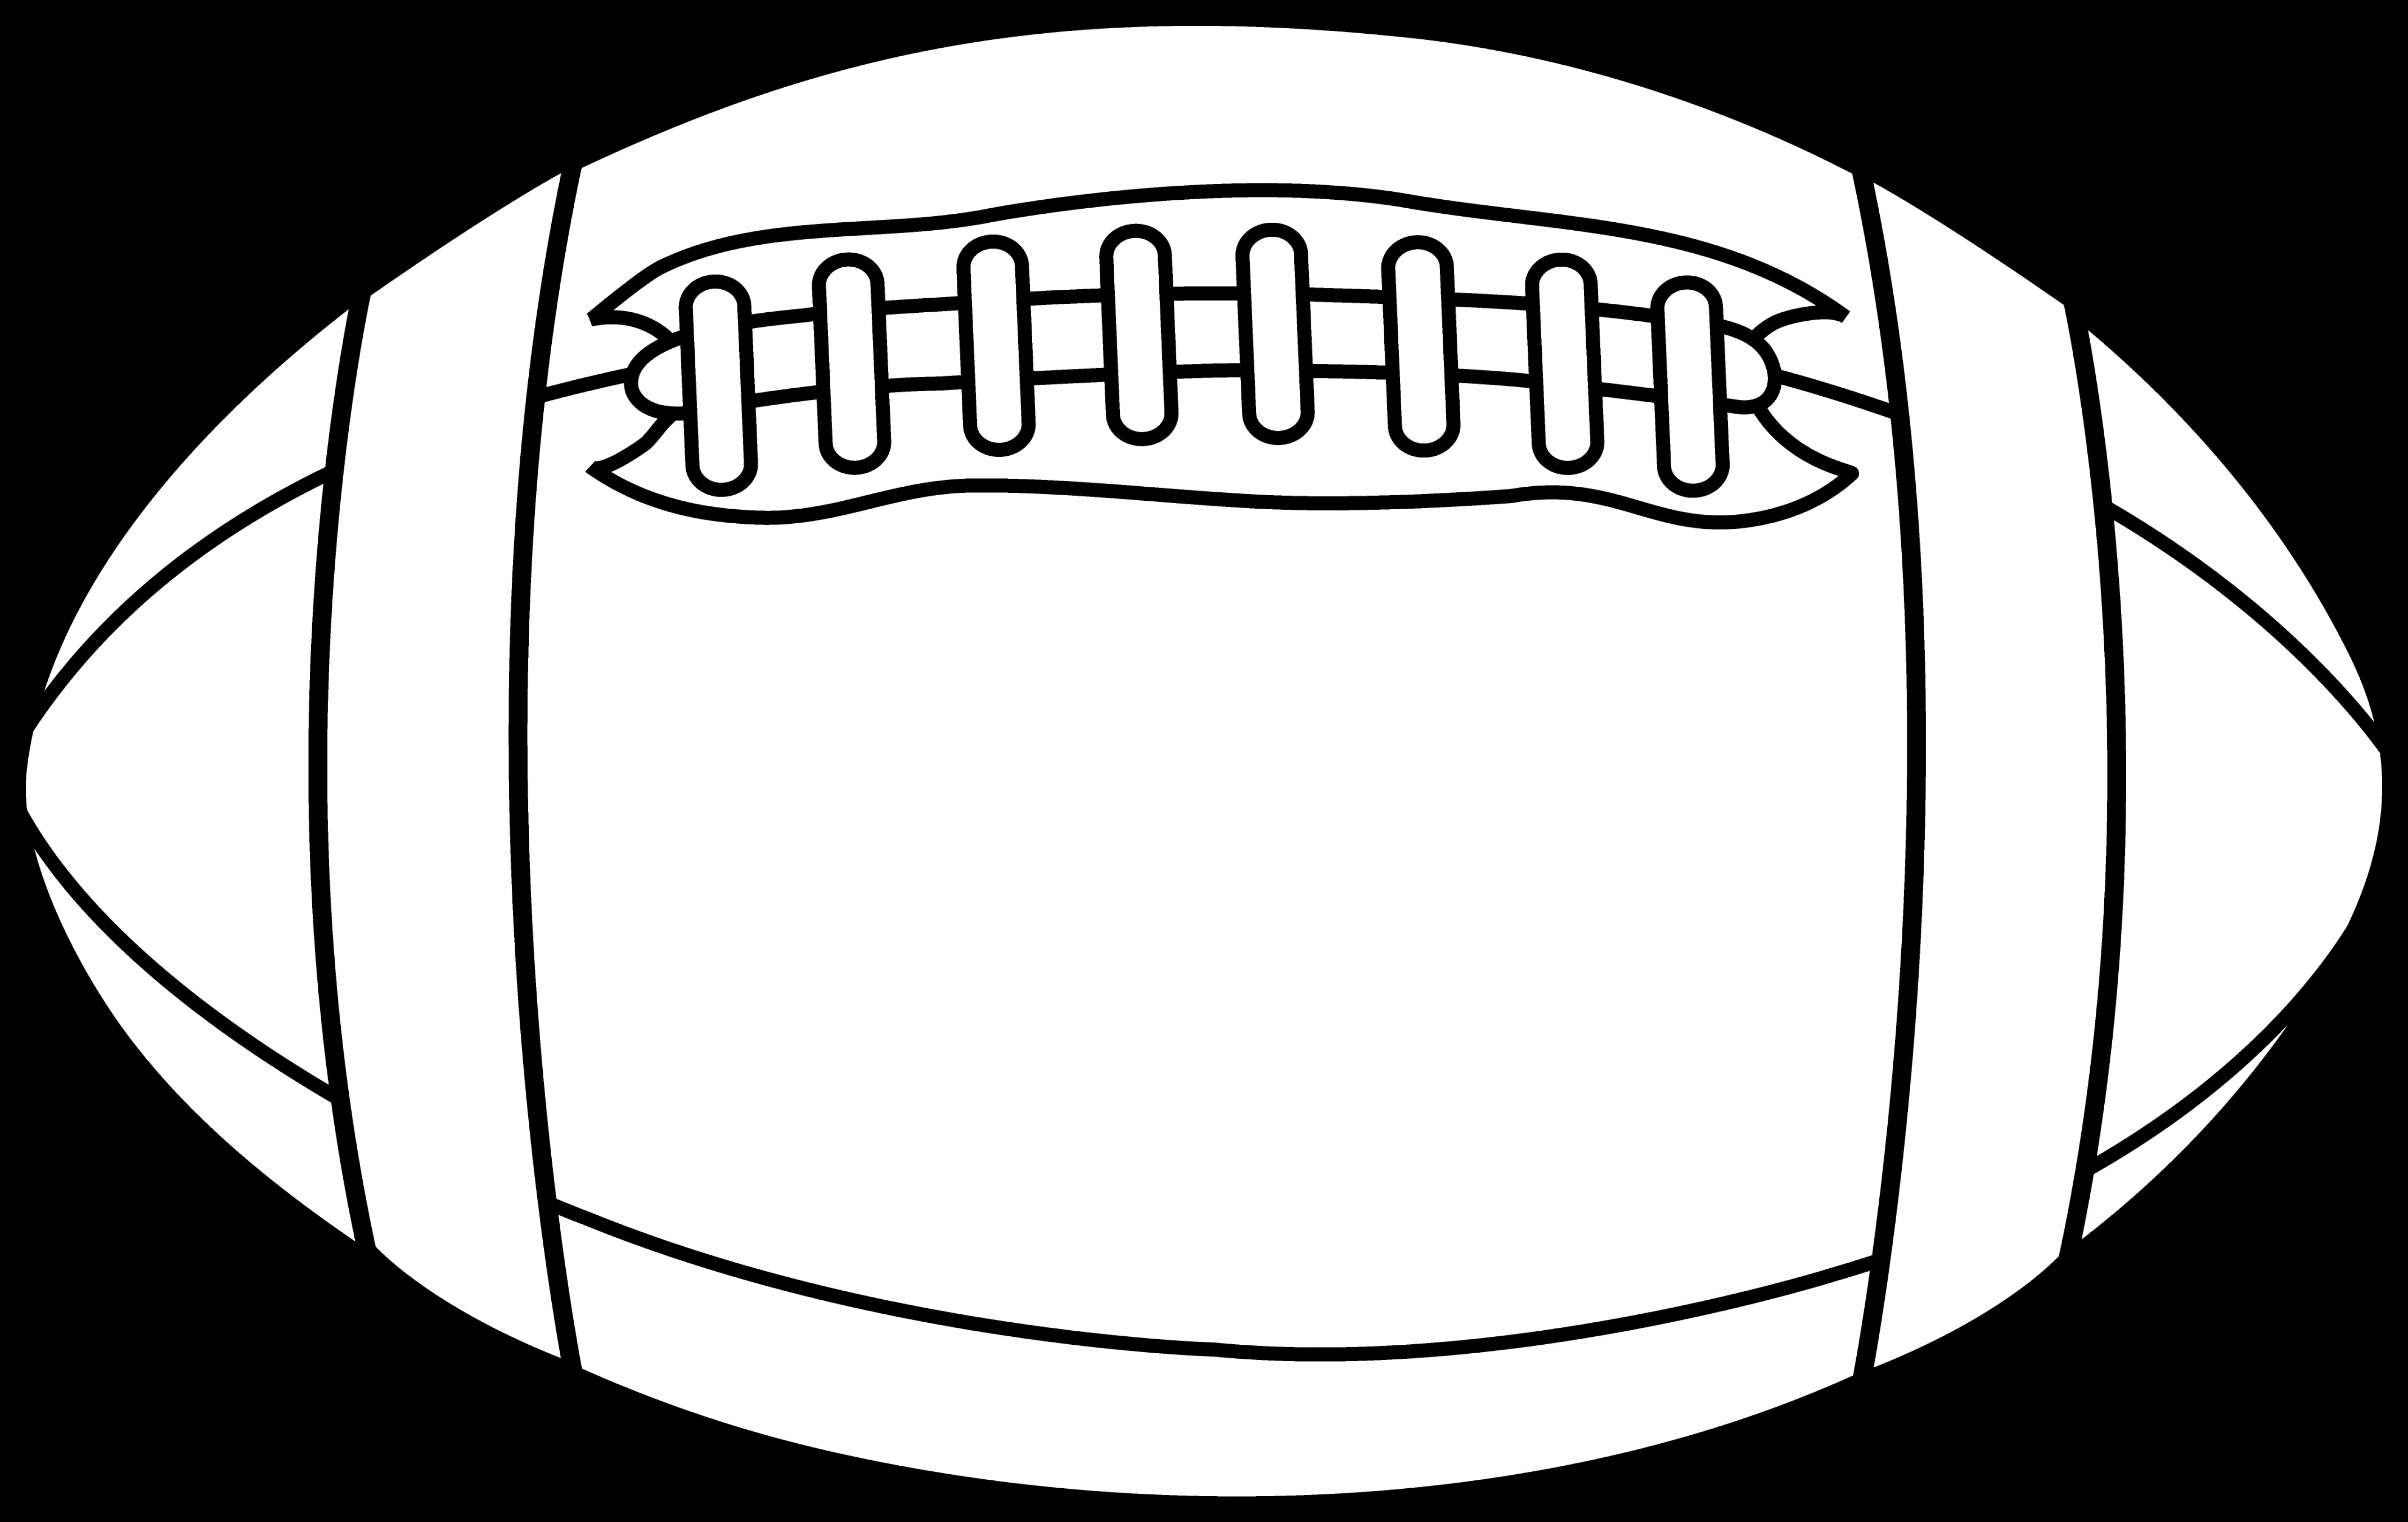 Day soidergi . Football numbers field clipart black and white